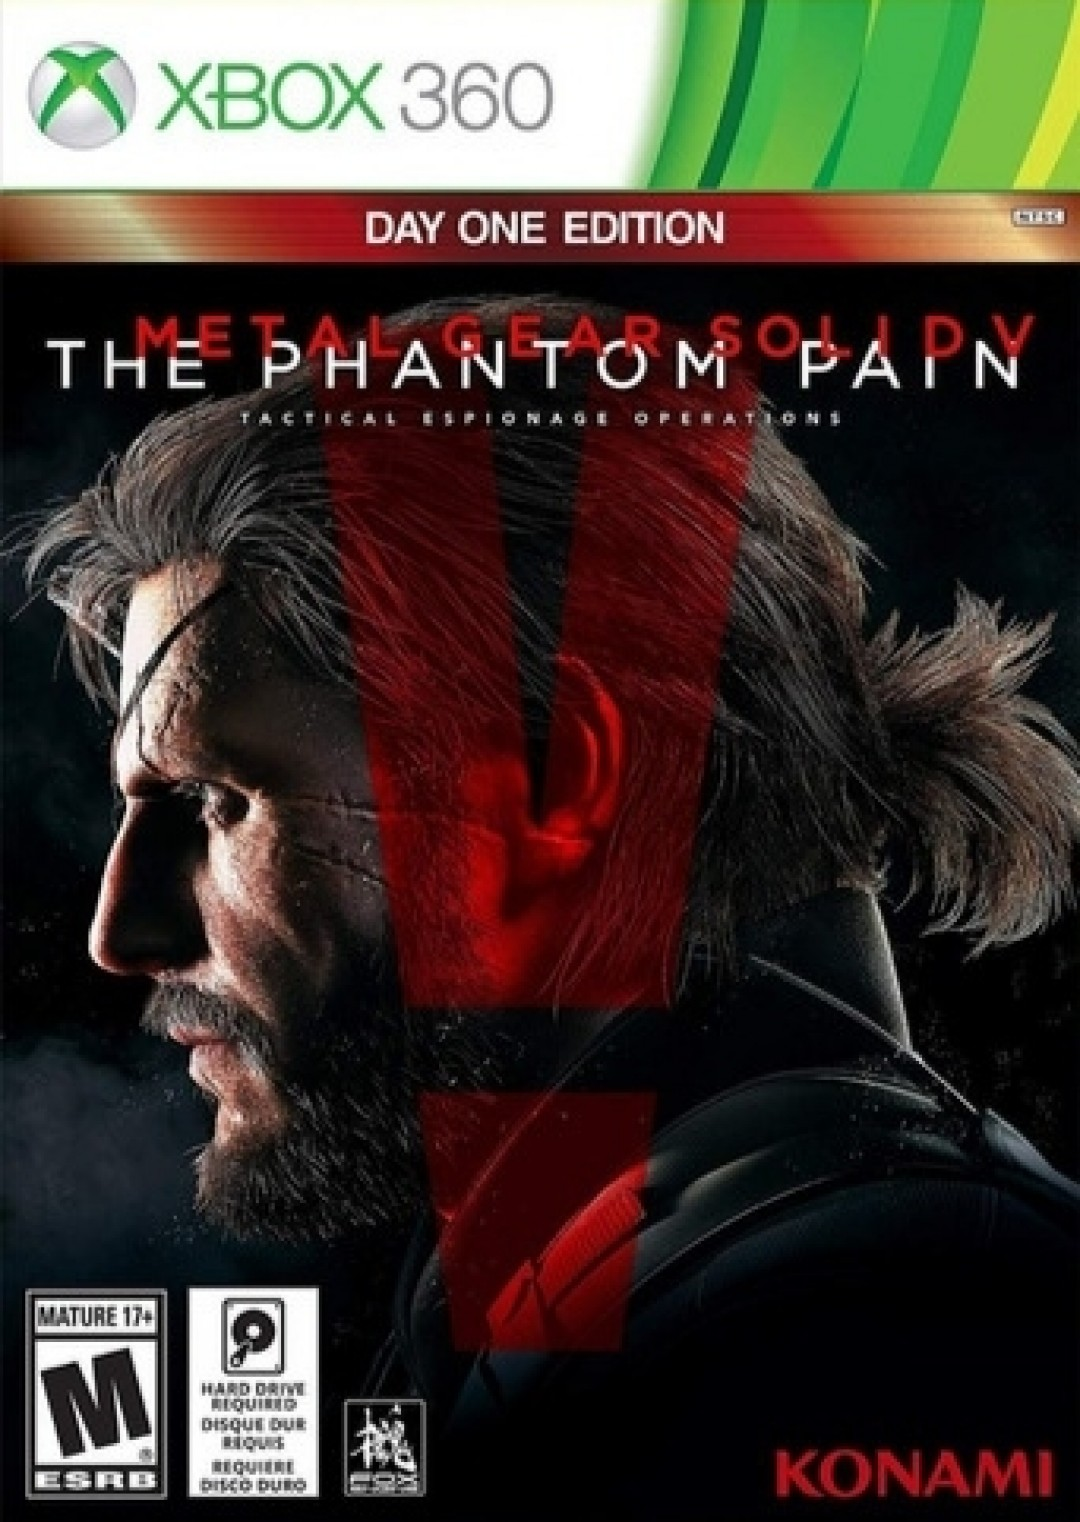 Metal Gear Solid V: The Phantom Pain - Day 1 Edition